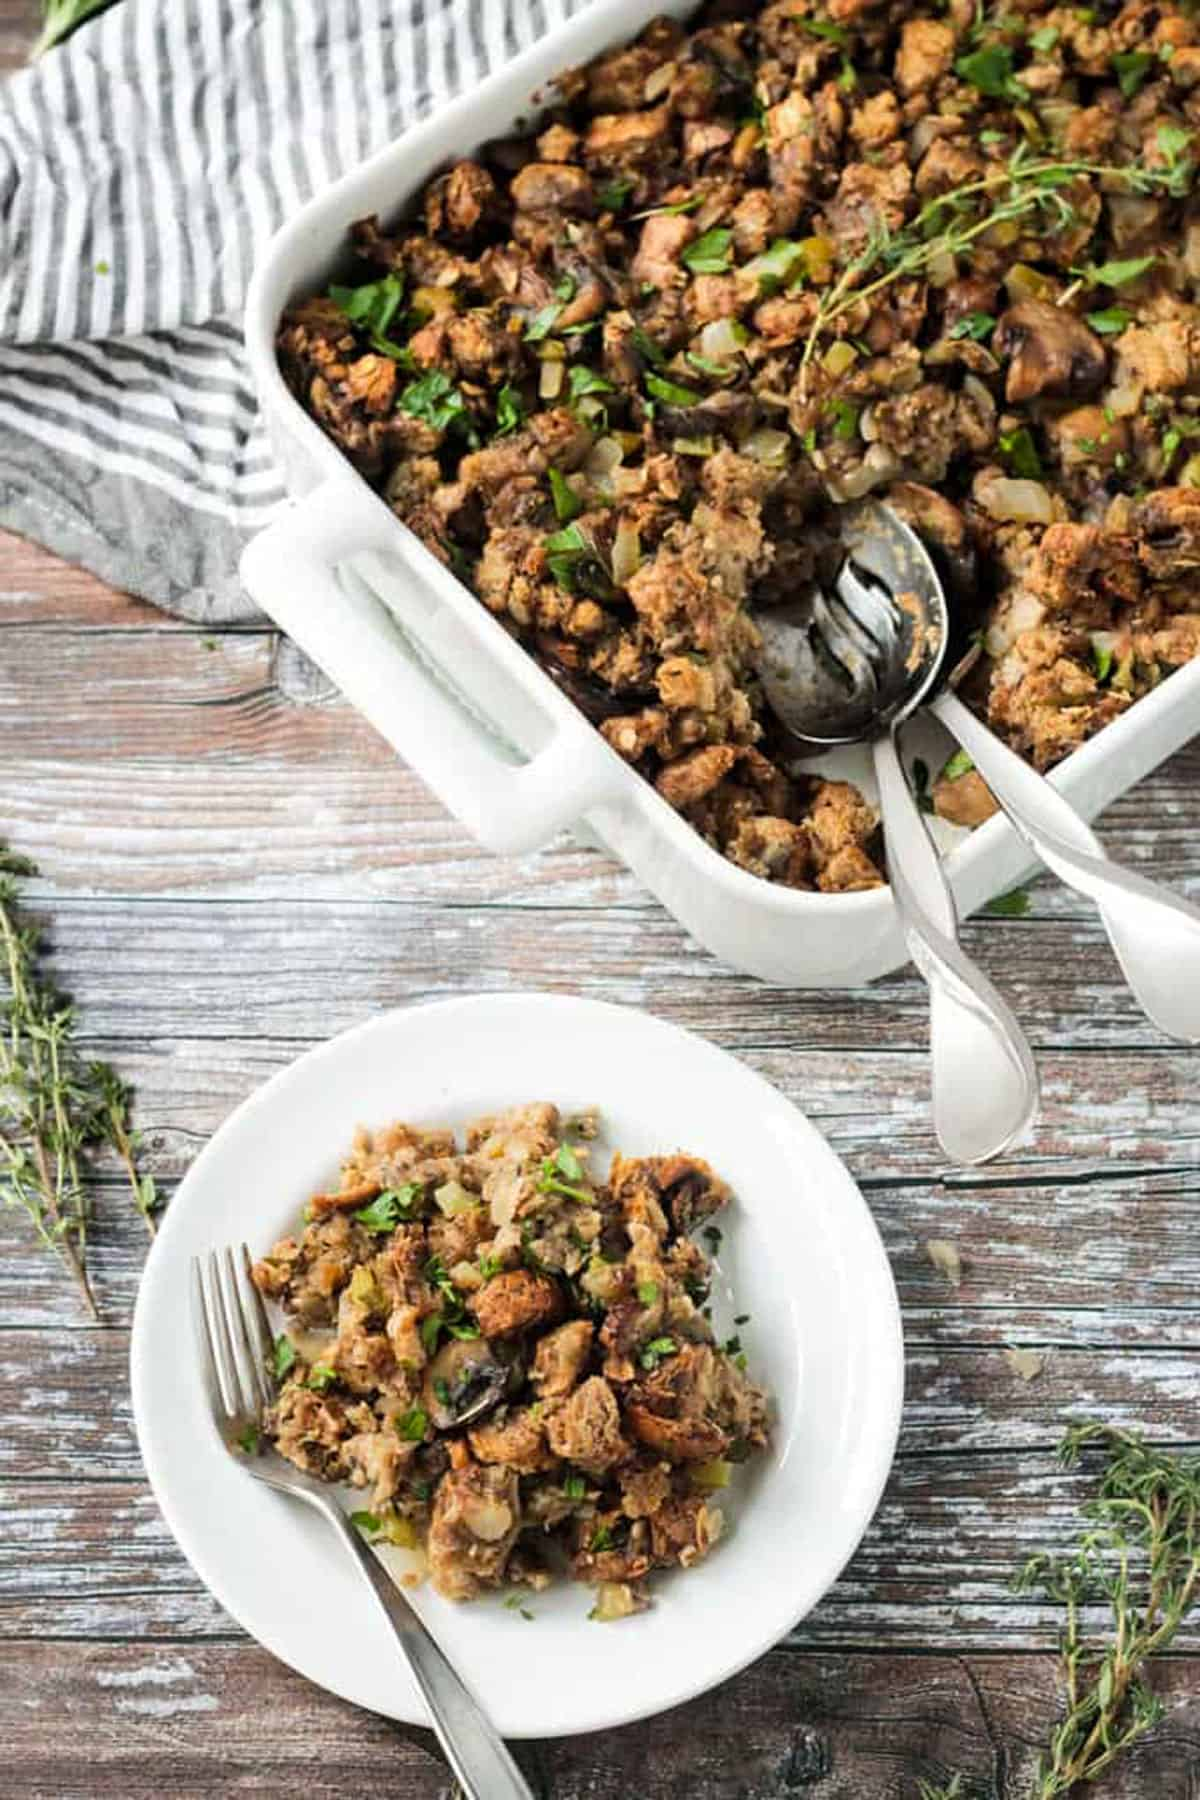 Serving of stuffing on a white plate in front of the baking dish.